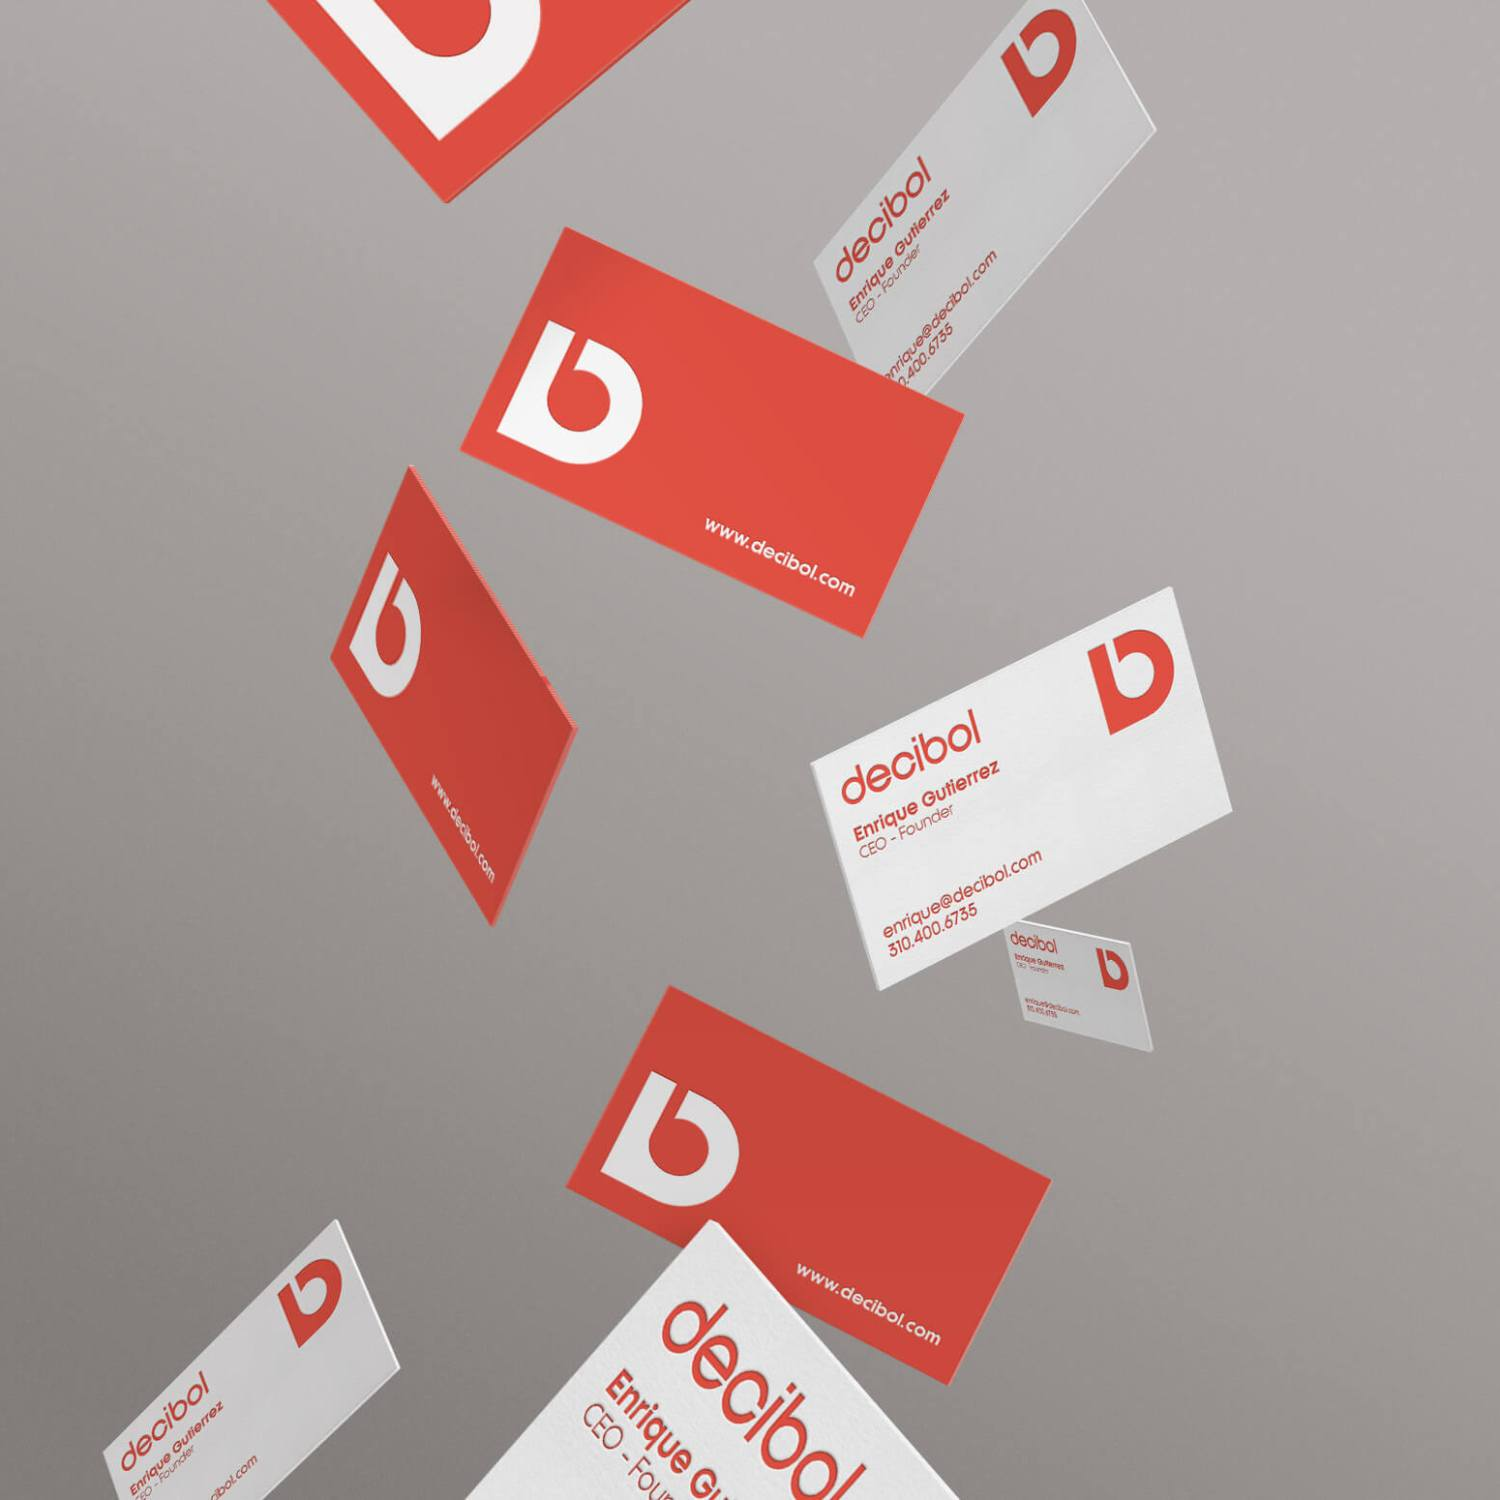 Decibol Gravity Business Cards